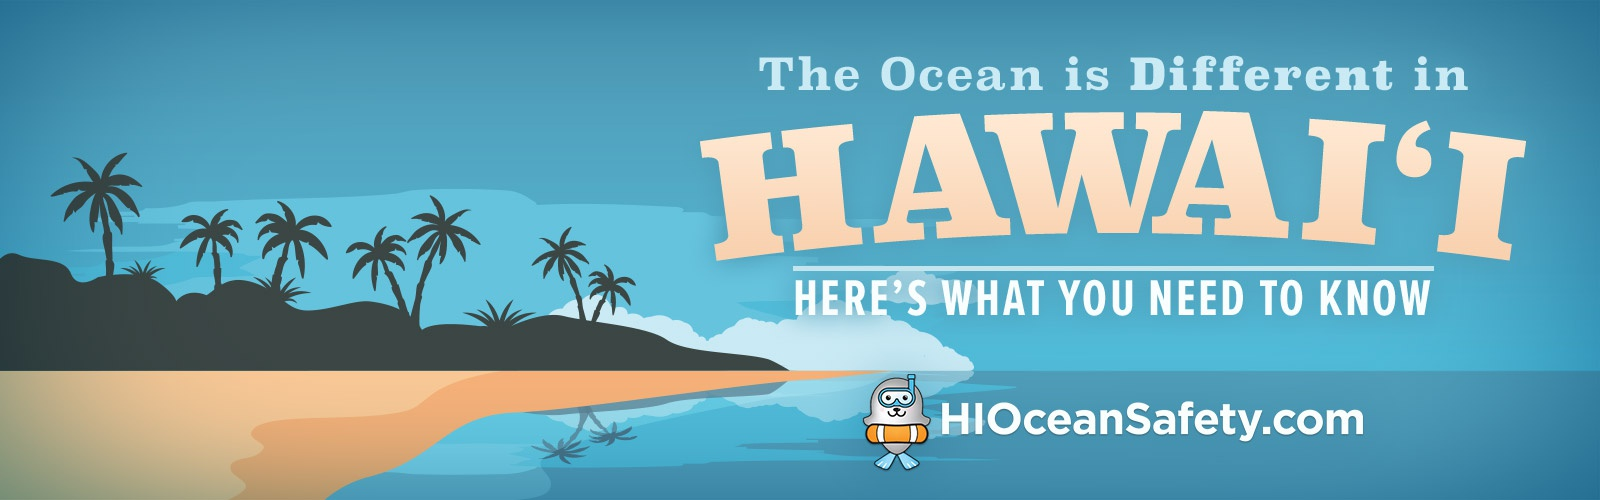 HiOceanSafety Banner